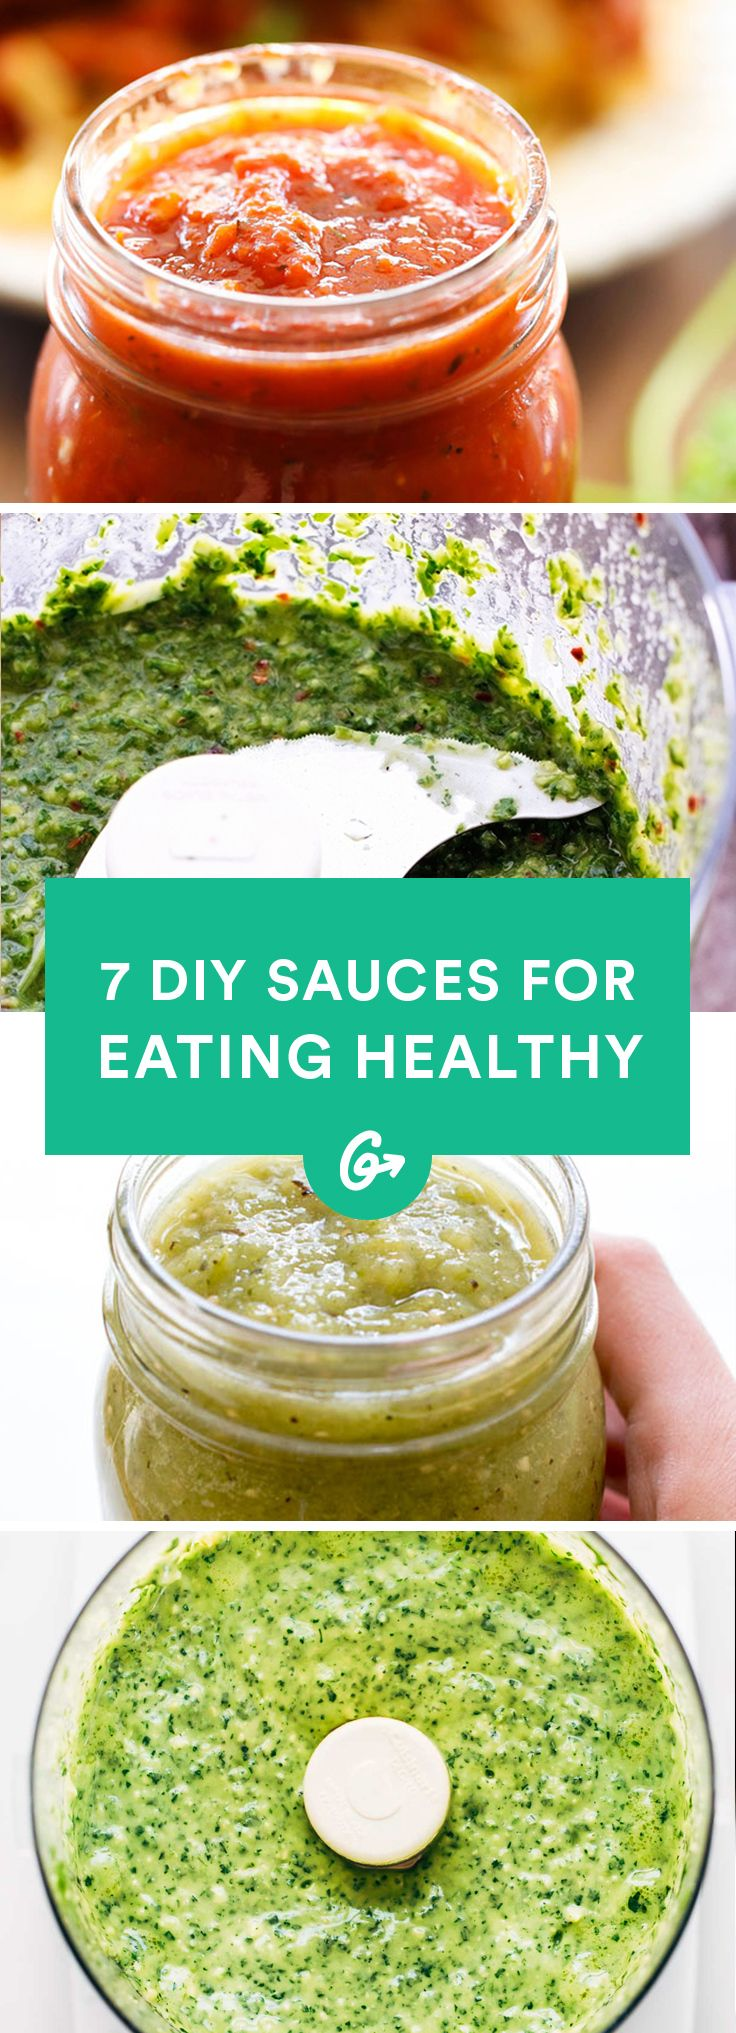 Super Easy. NO added sugar. http://greatist.com/eat/sauce-recipes-spice-up-meal